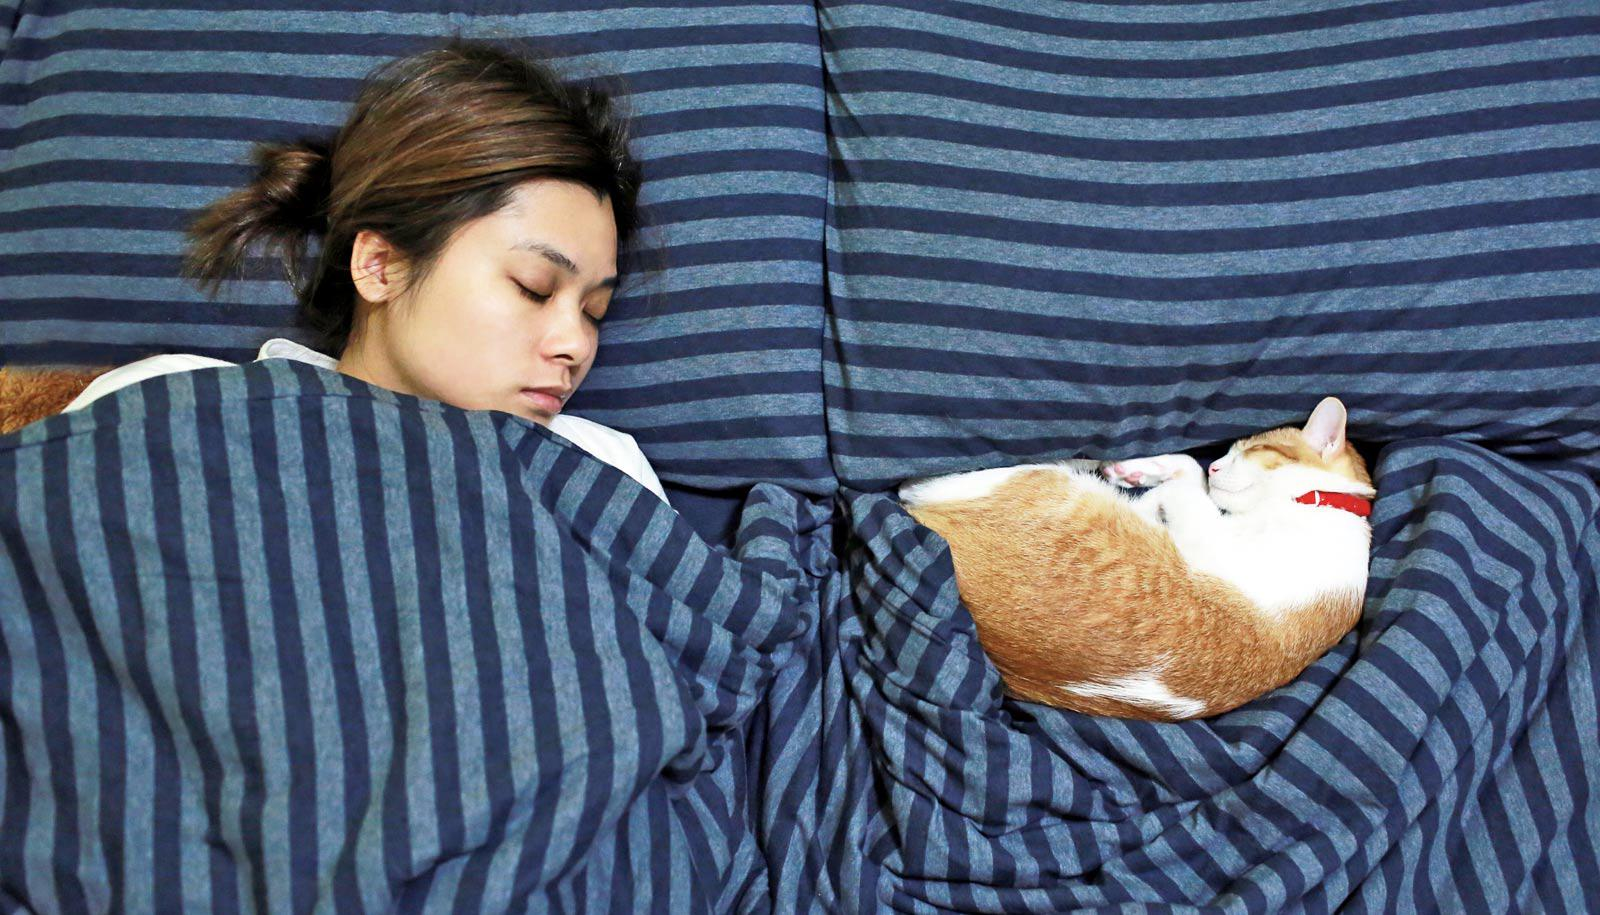 woman asleep in navy bed with cat